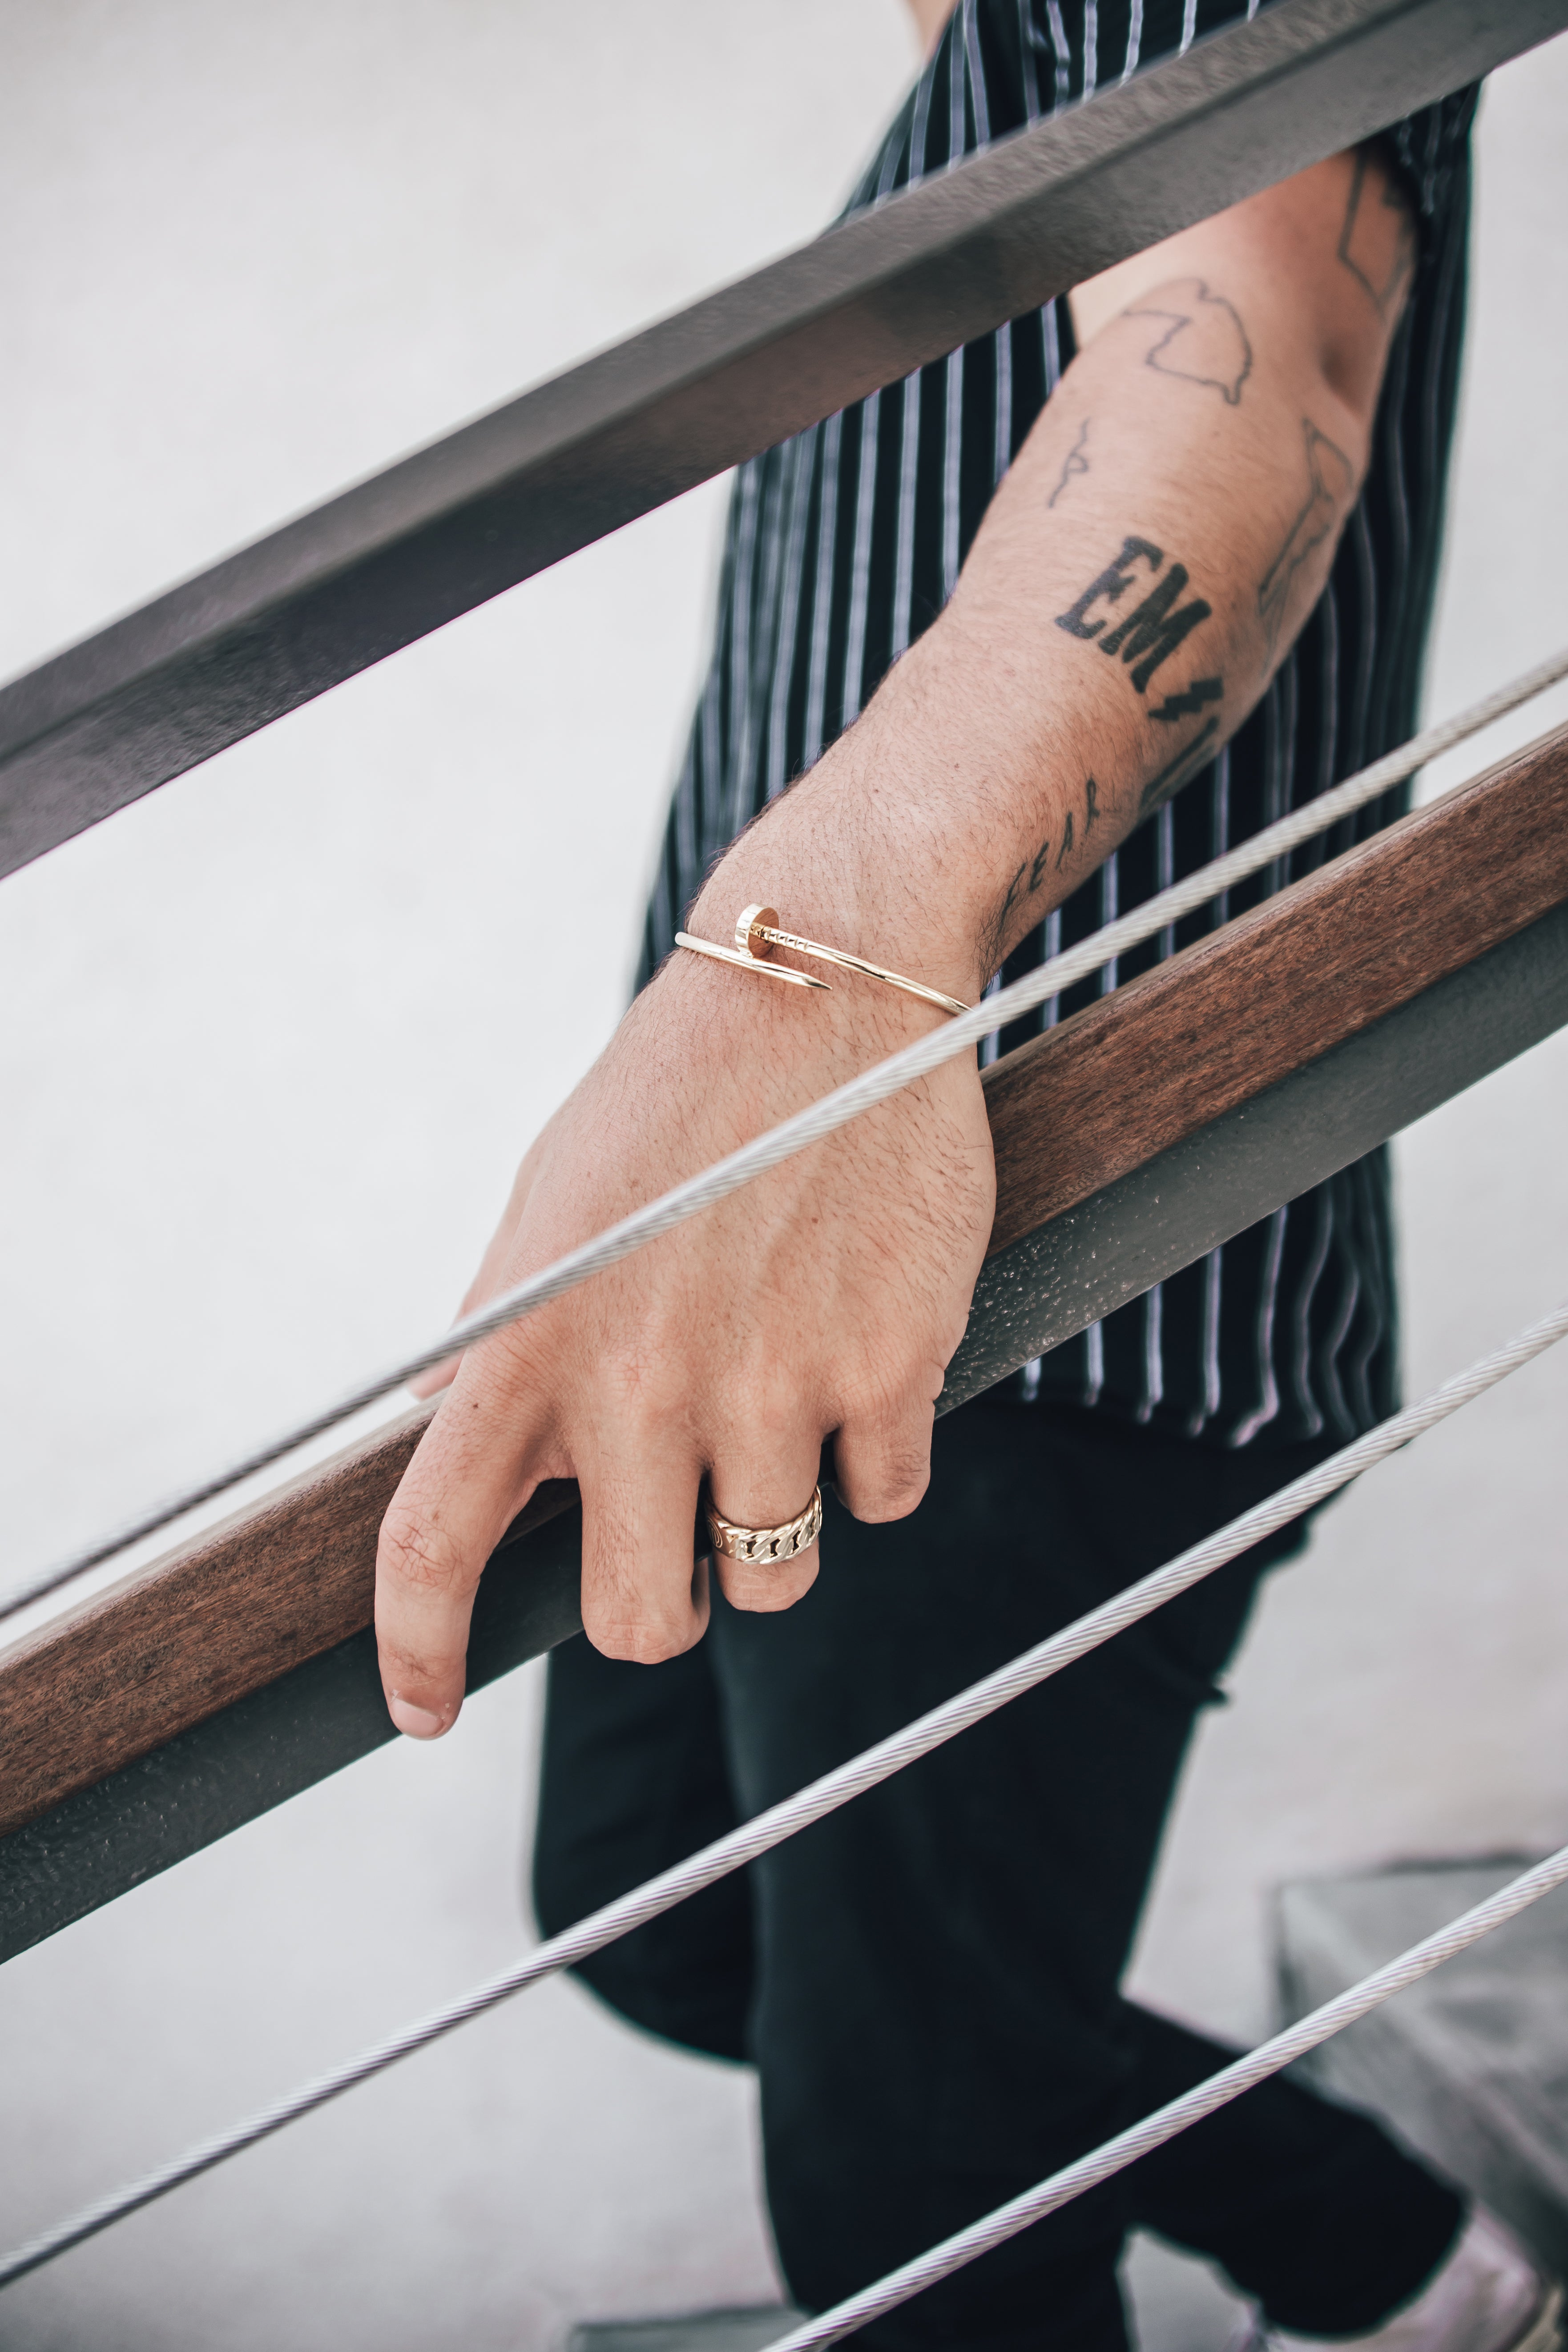 The W Brothers Custom Nail Bracelet hand-crafted in solid 14k & solid 18k Gold available for men and women luxury fashion. Complete your look with our Cartier inspired nail bracelet in real solid gold. Shop your gold jewelry options only at thewbros.com